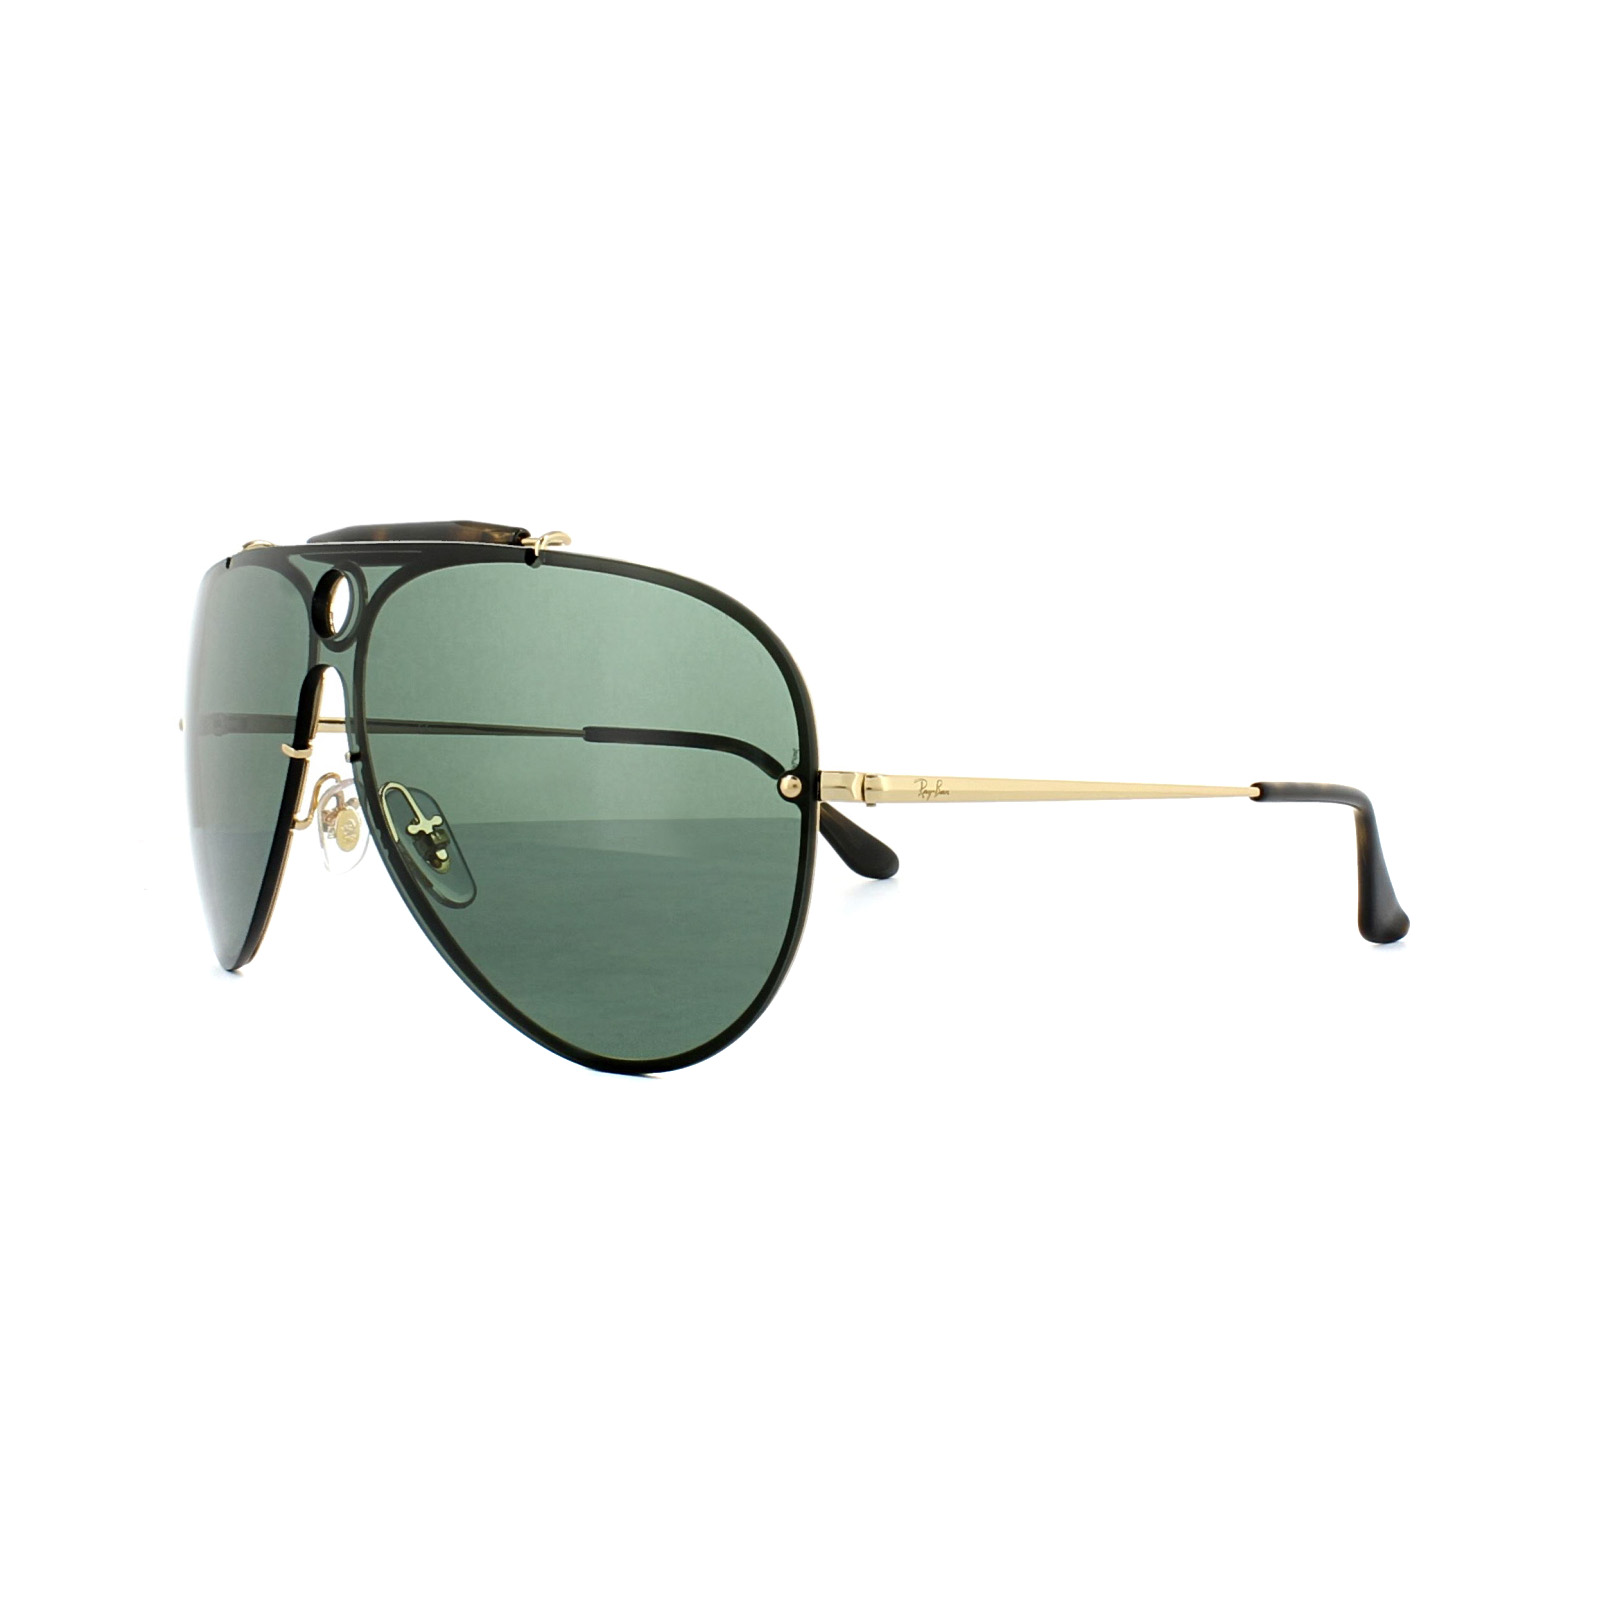 Sentinel Ray-Ban Sunglasses Blaze Shooter 3581N 001 71 Gold Green d3834ec976